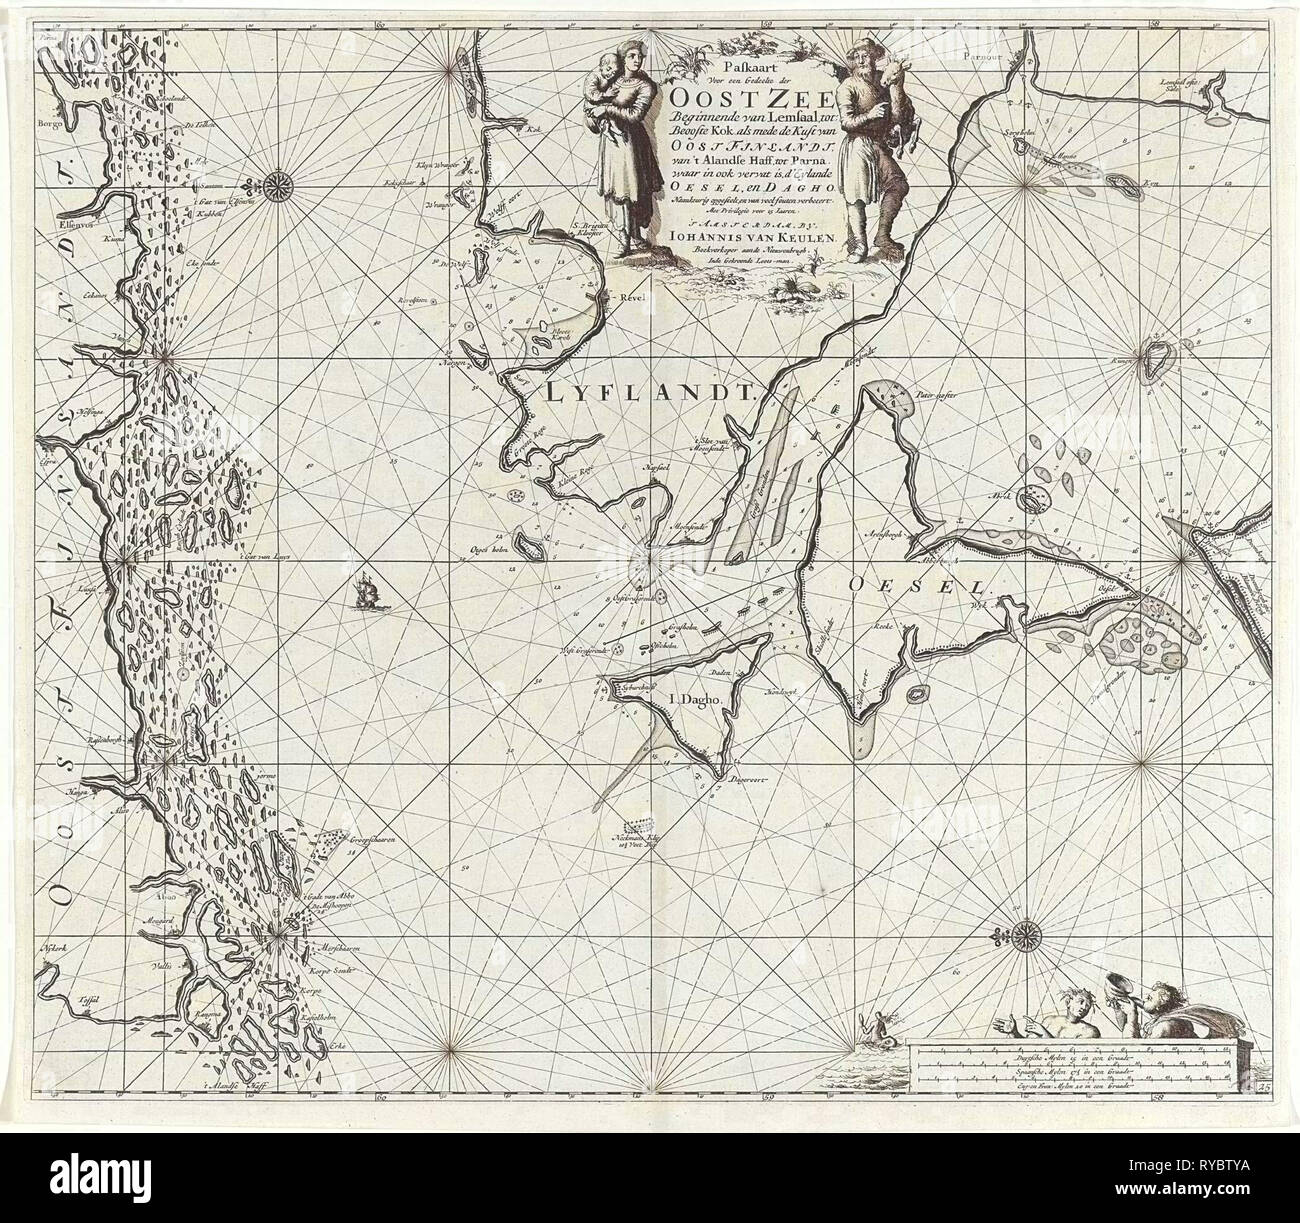 Sea chart of the mouth of the Gulf of Finland in the Baltic Sea, Jan Luyken, Johannes van Keulen (I), unknown, 1681 - 1799 - Stock Image